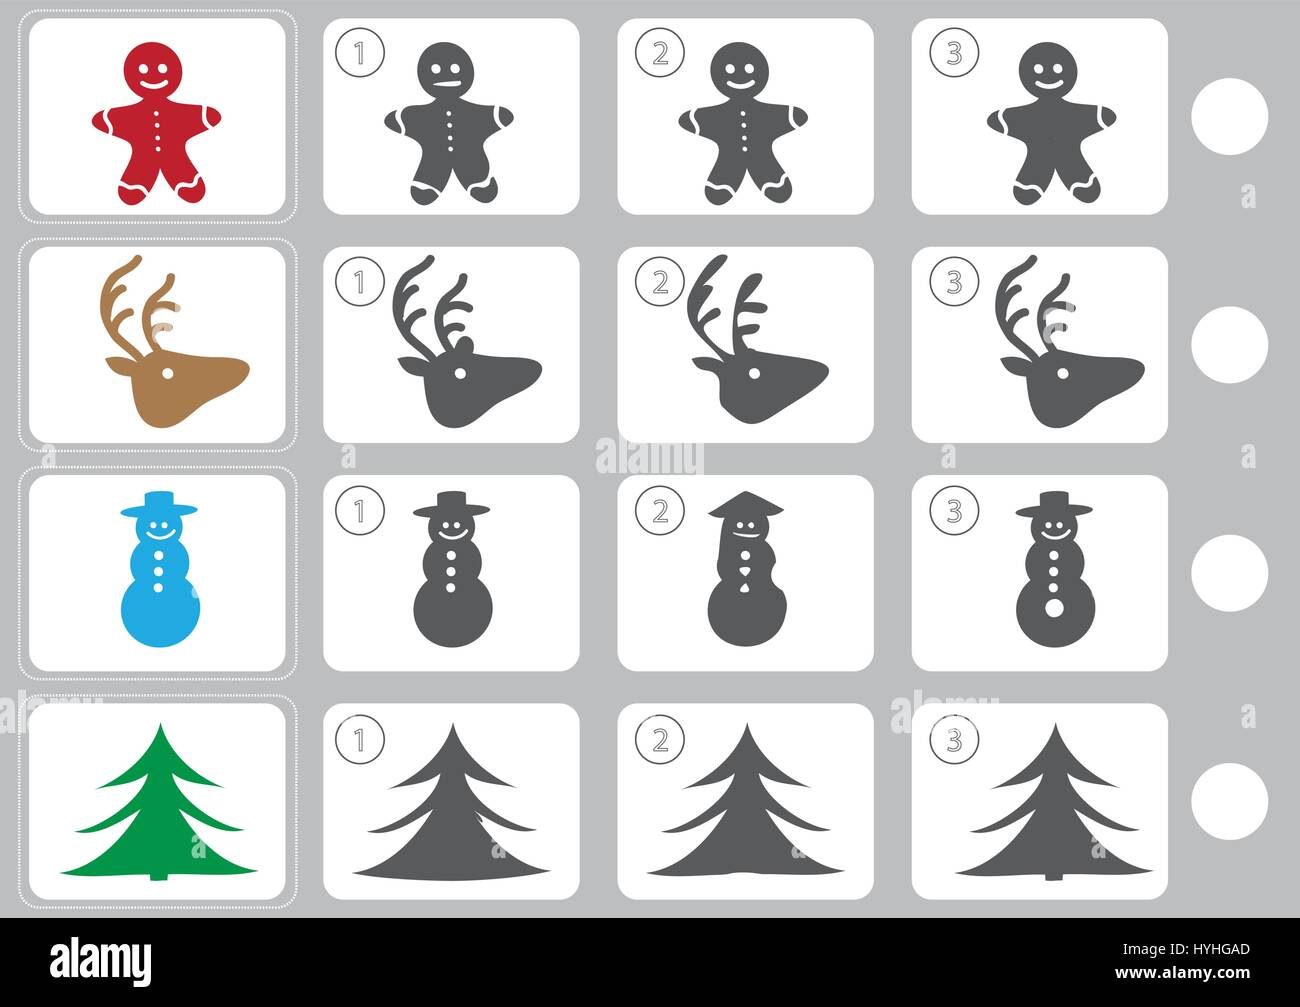 Match Shadow Puzzle Worksheet Kids Stock Photos Amp Match Shadow Puzzle Worksheet Kids Stock